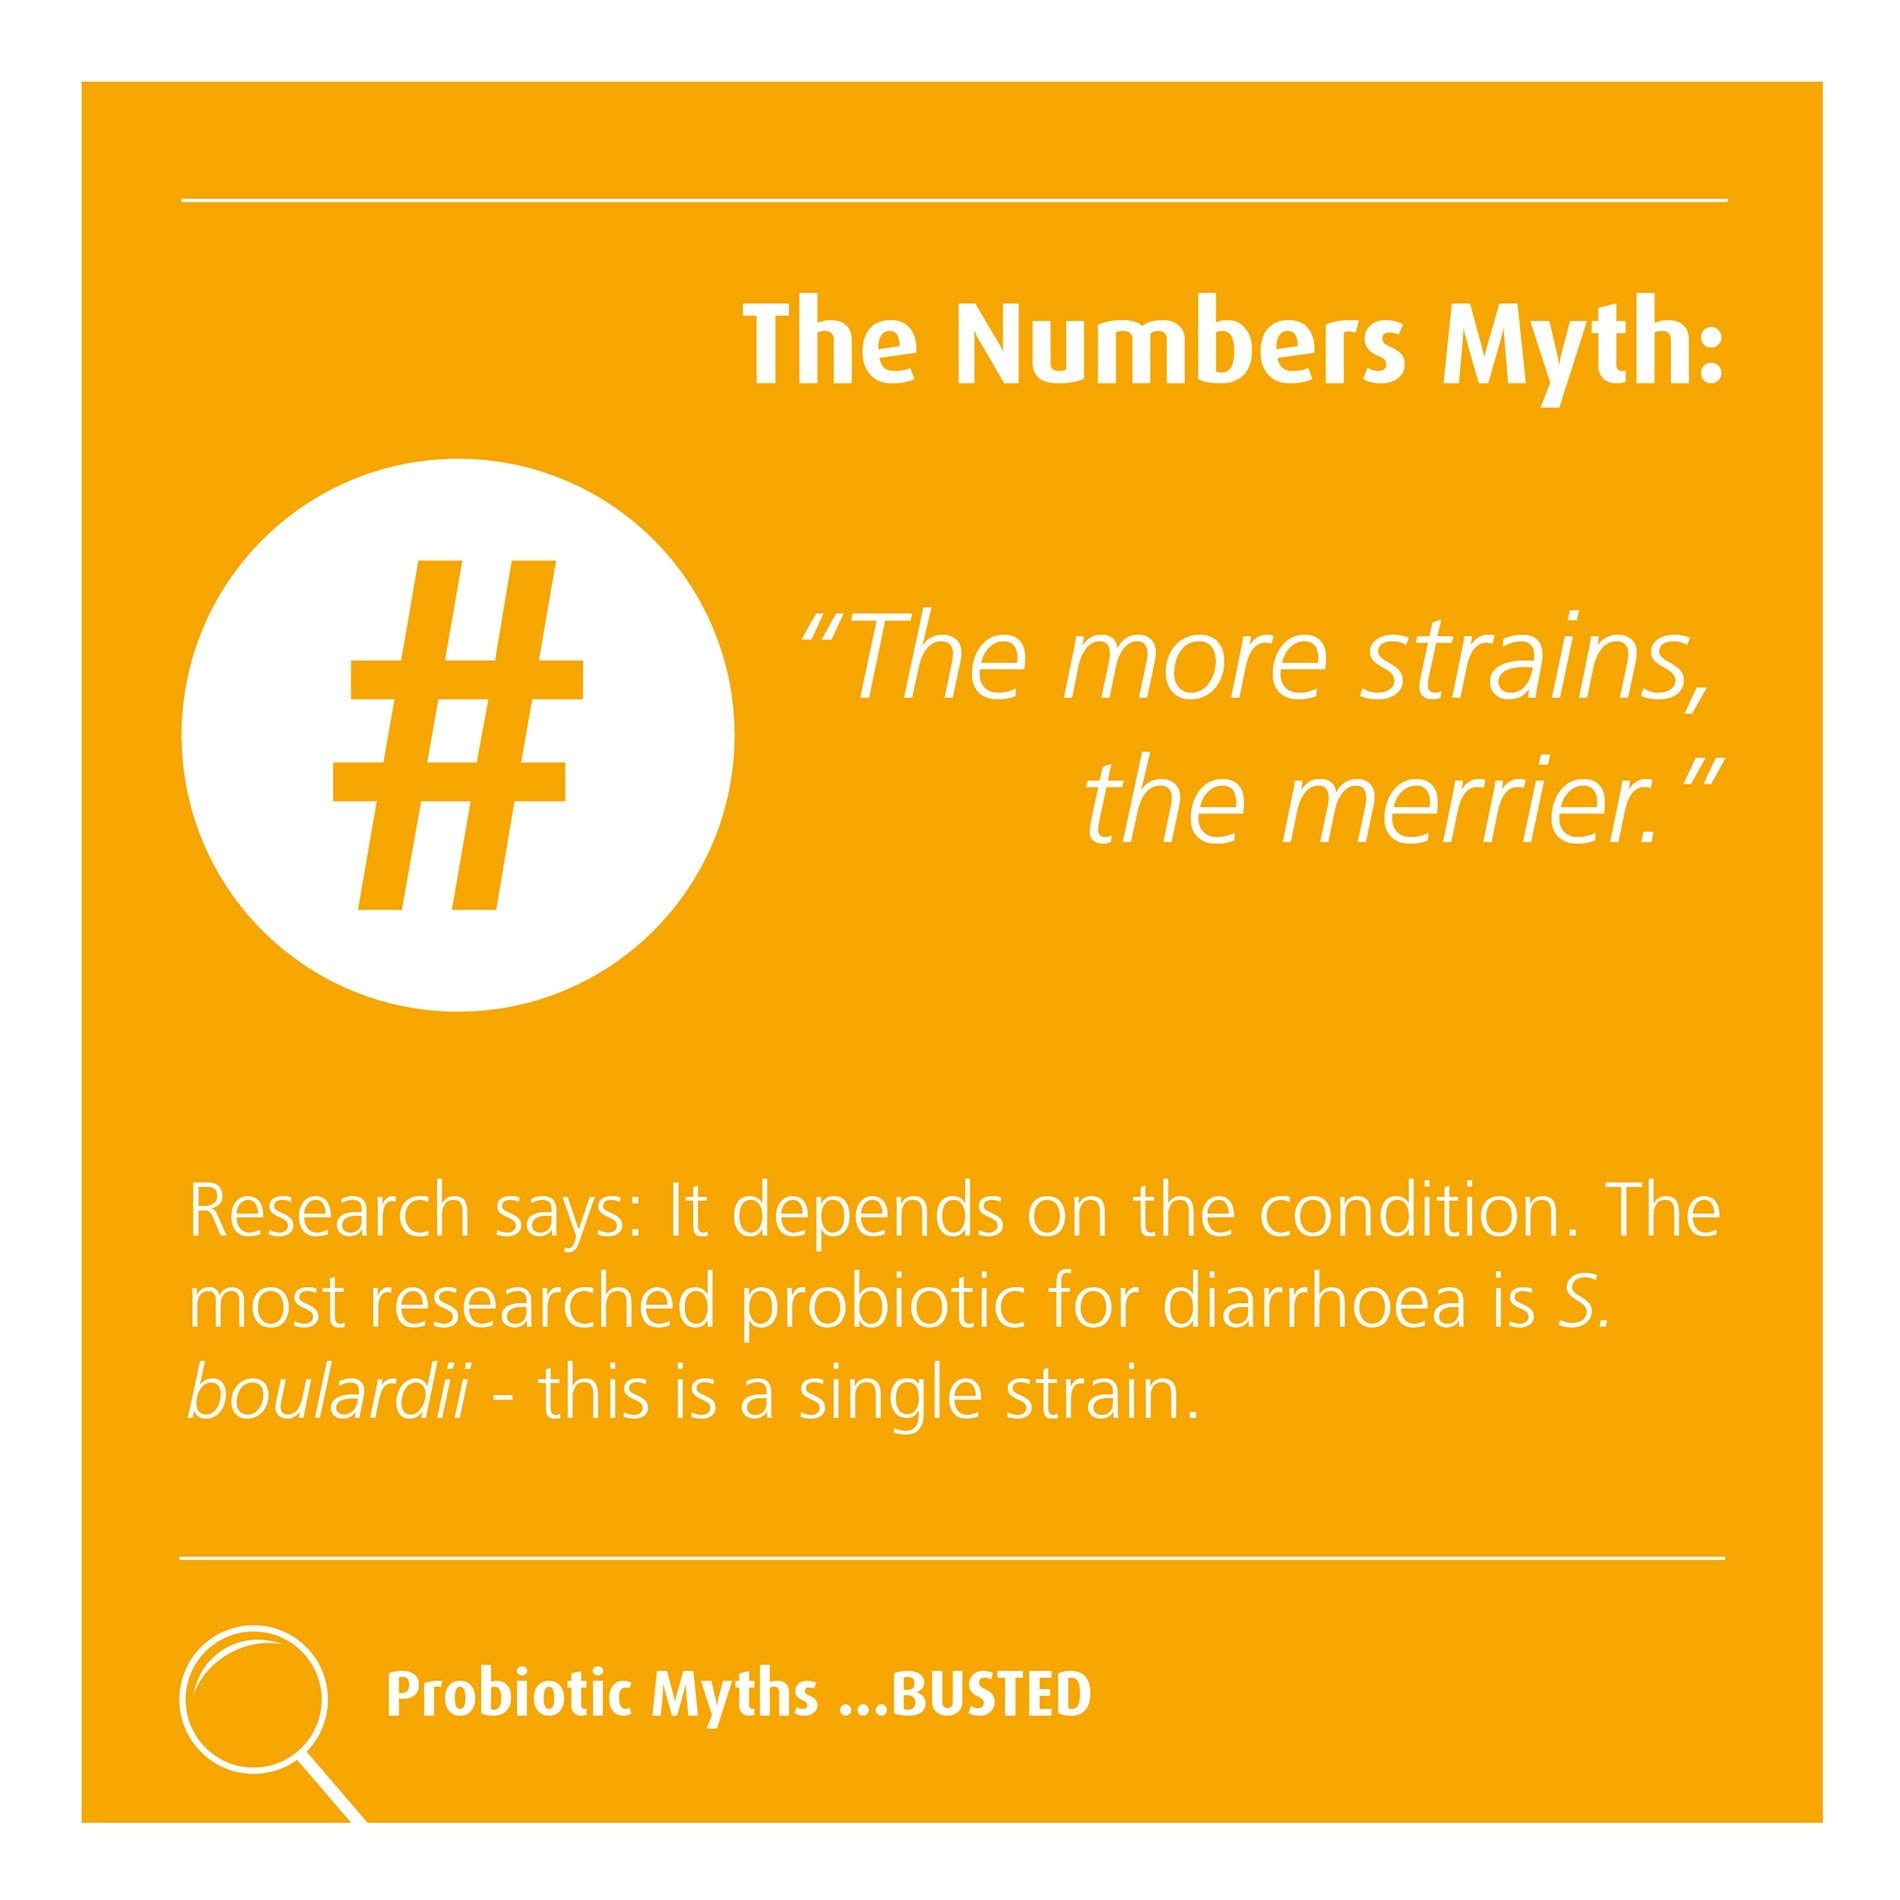 The number myth